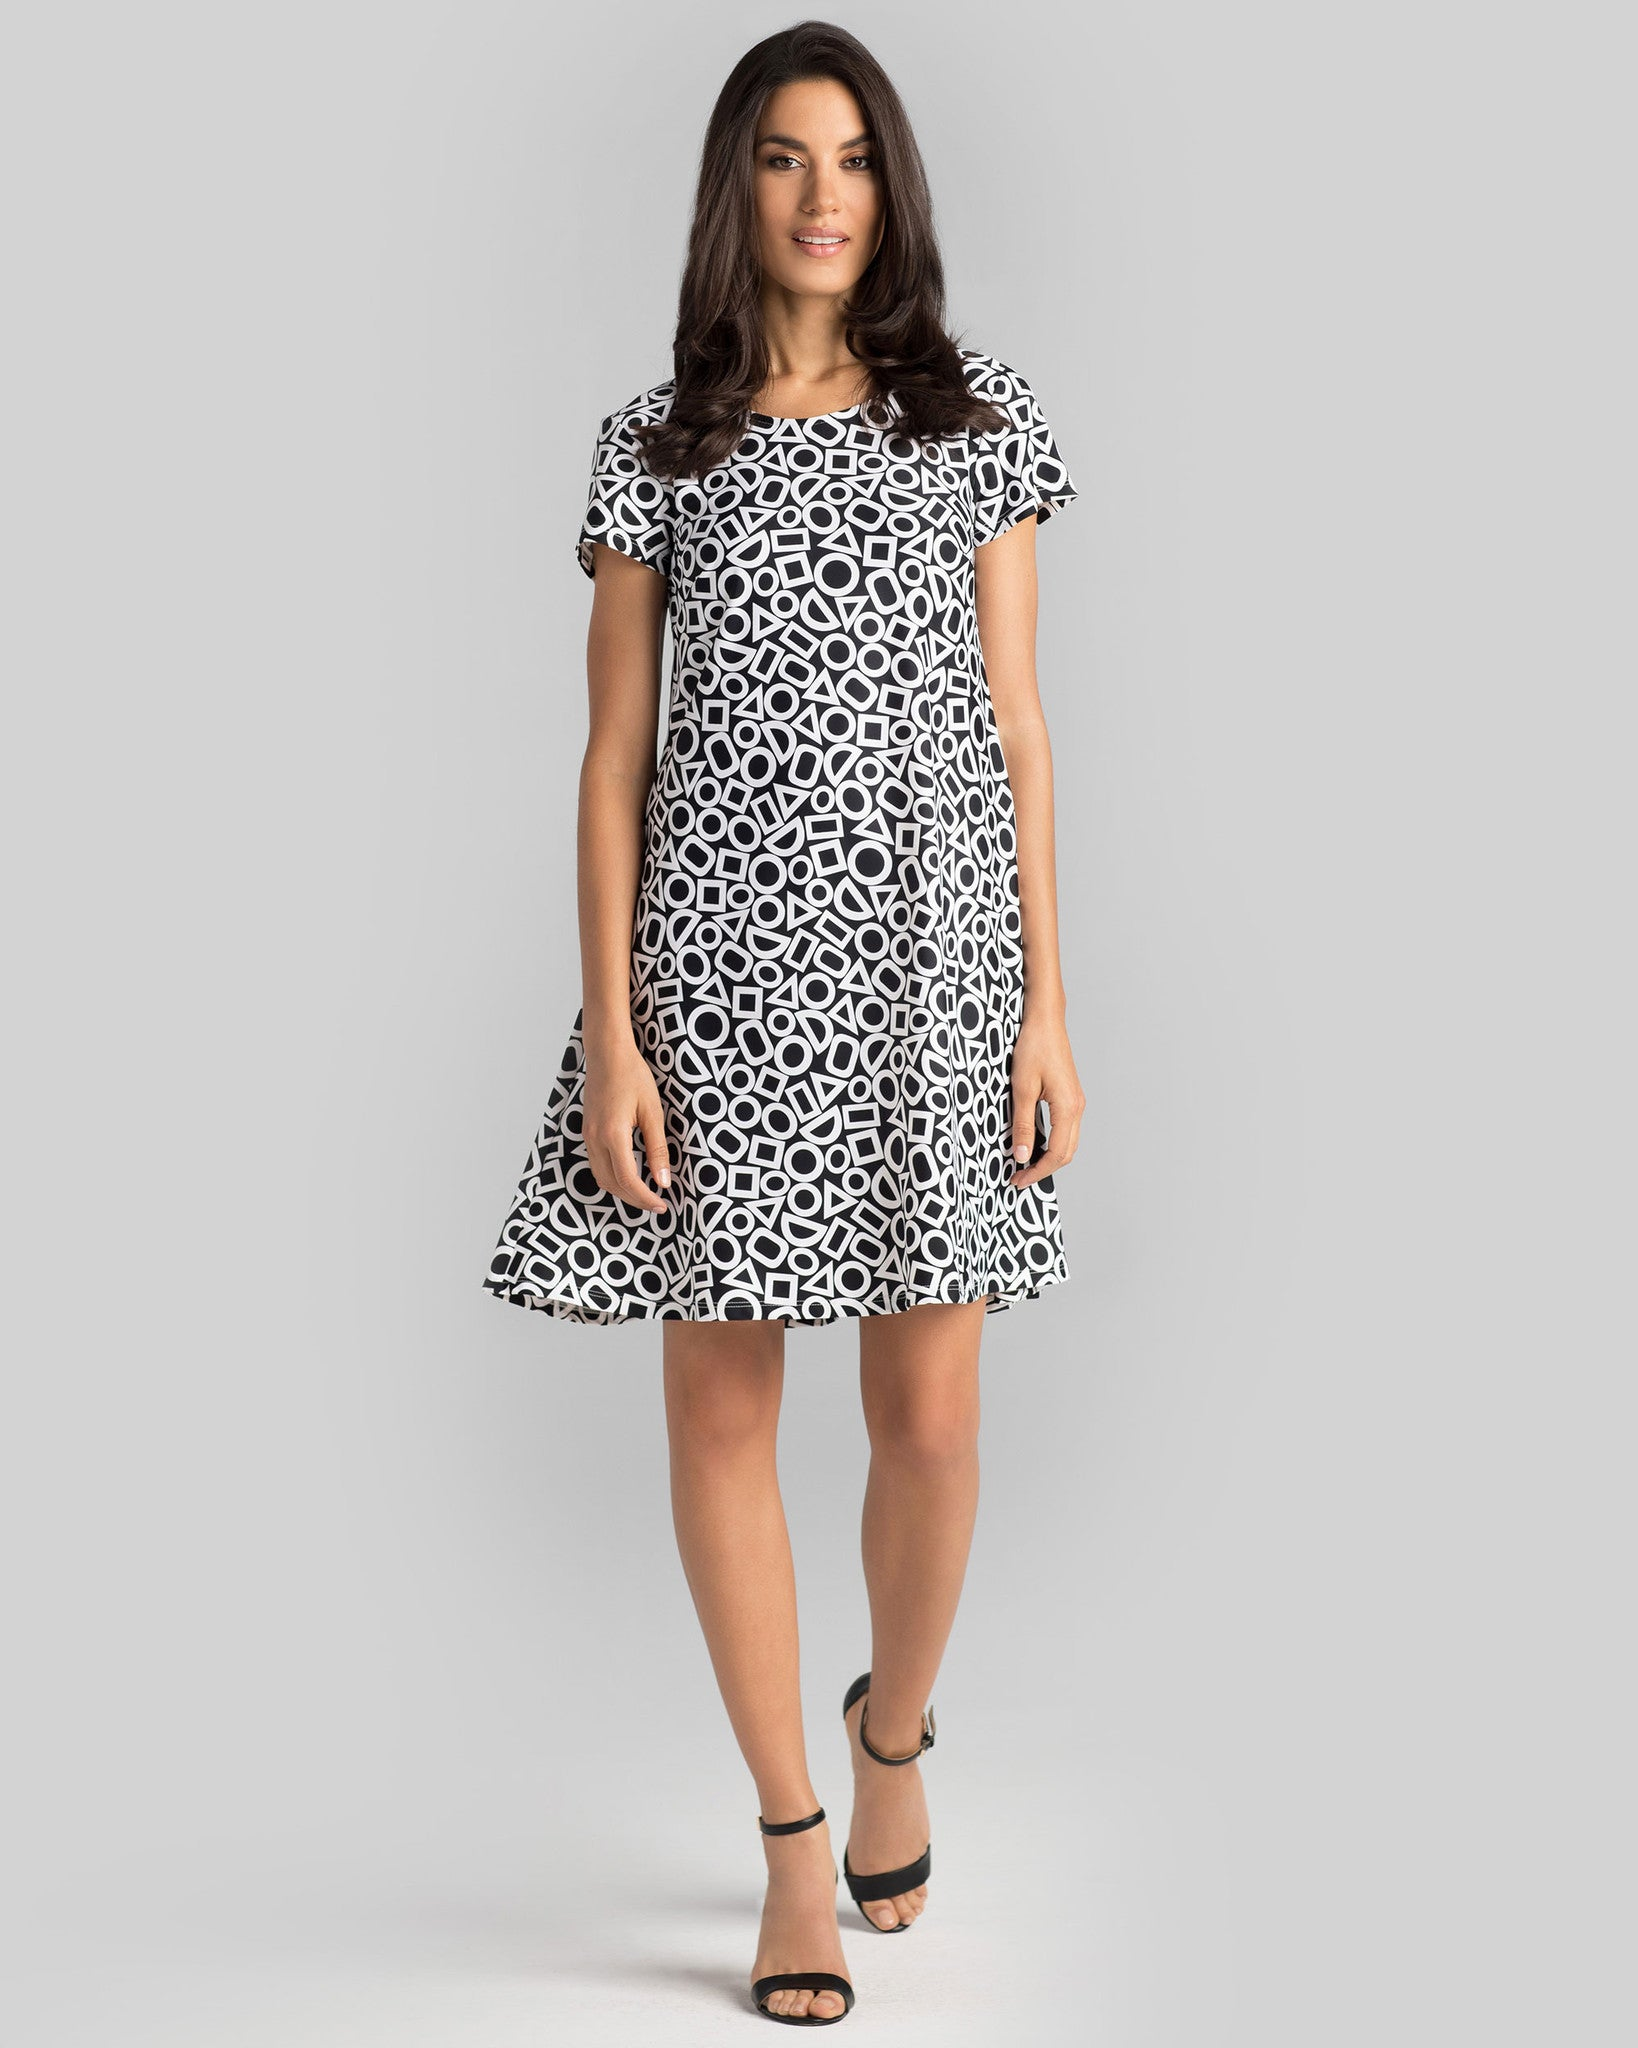 T shirt dress black and white - Ibiza T Shirt Dress In Black White In Shapes